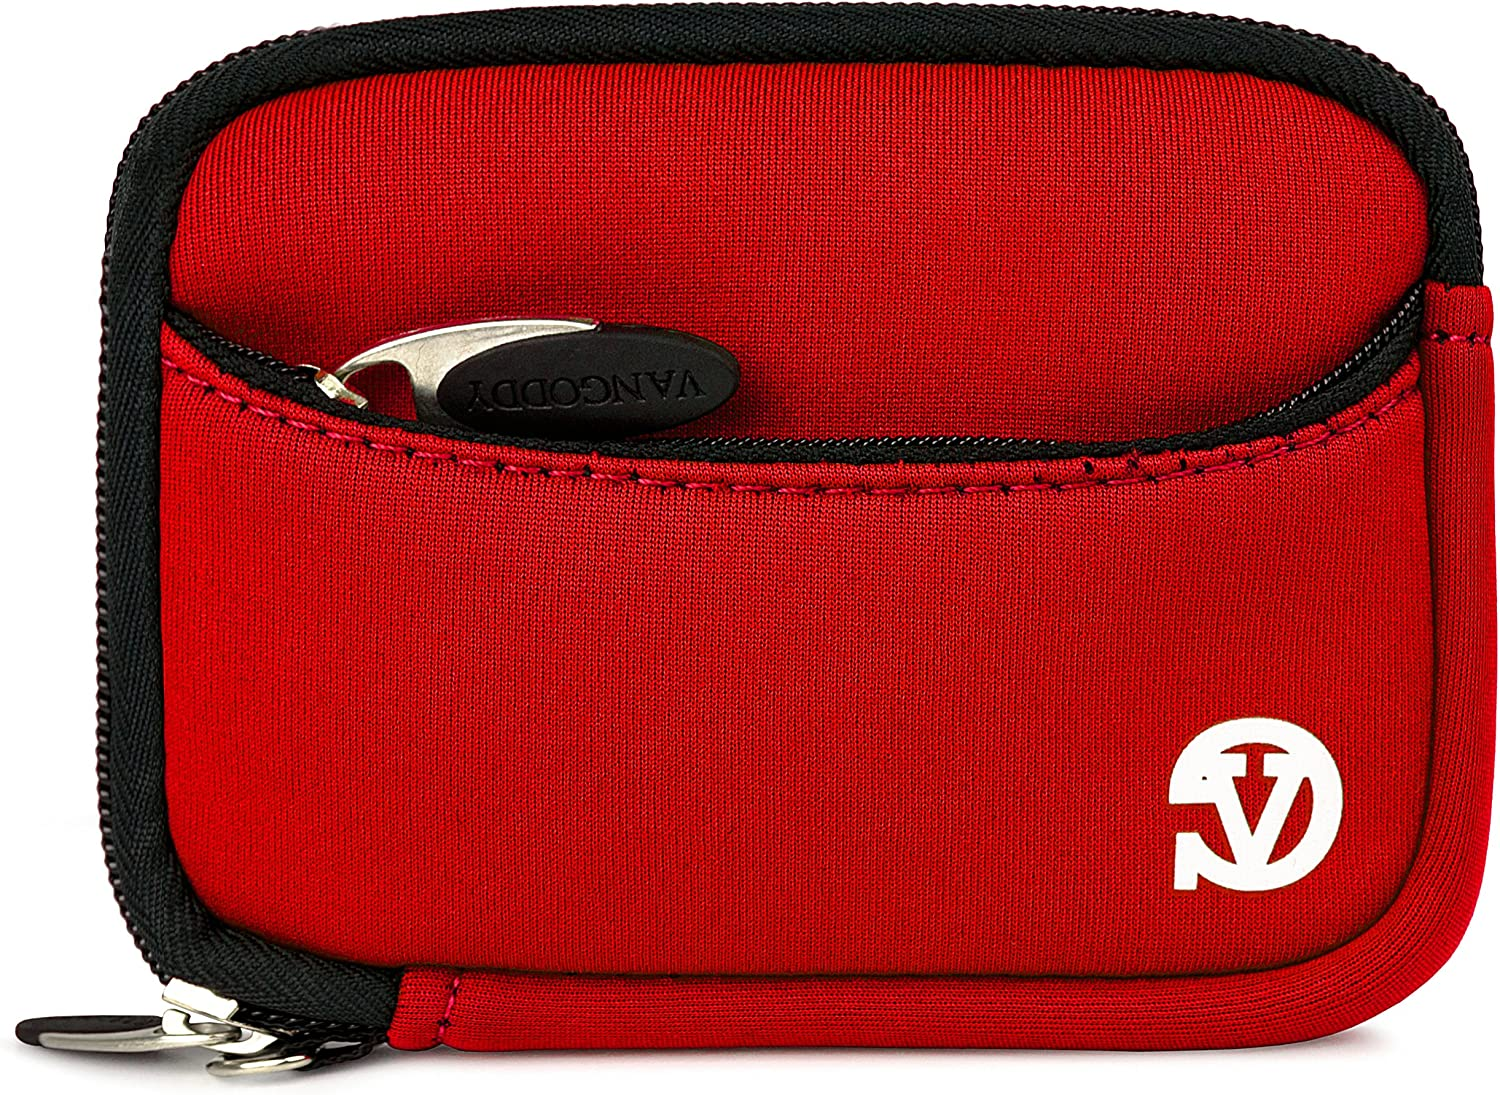 VanGoddy Mini Glove Sleeve Pouch Case for Coleman Duo2 2V9WP Waterproof Digital Cameras and Screen Protector Red